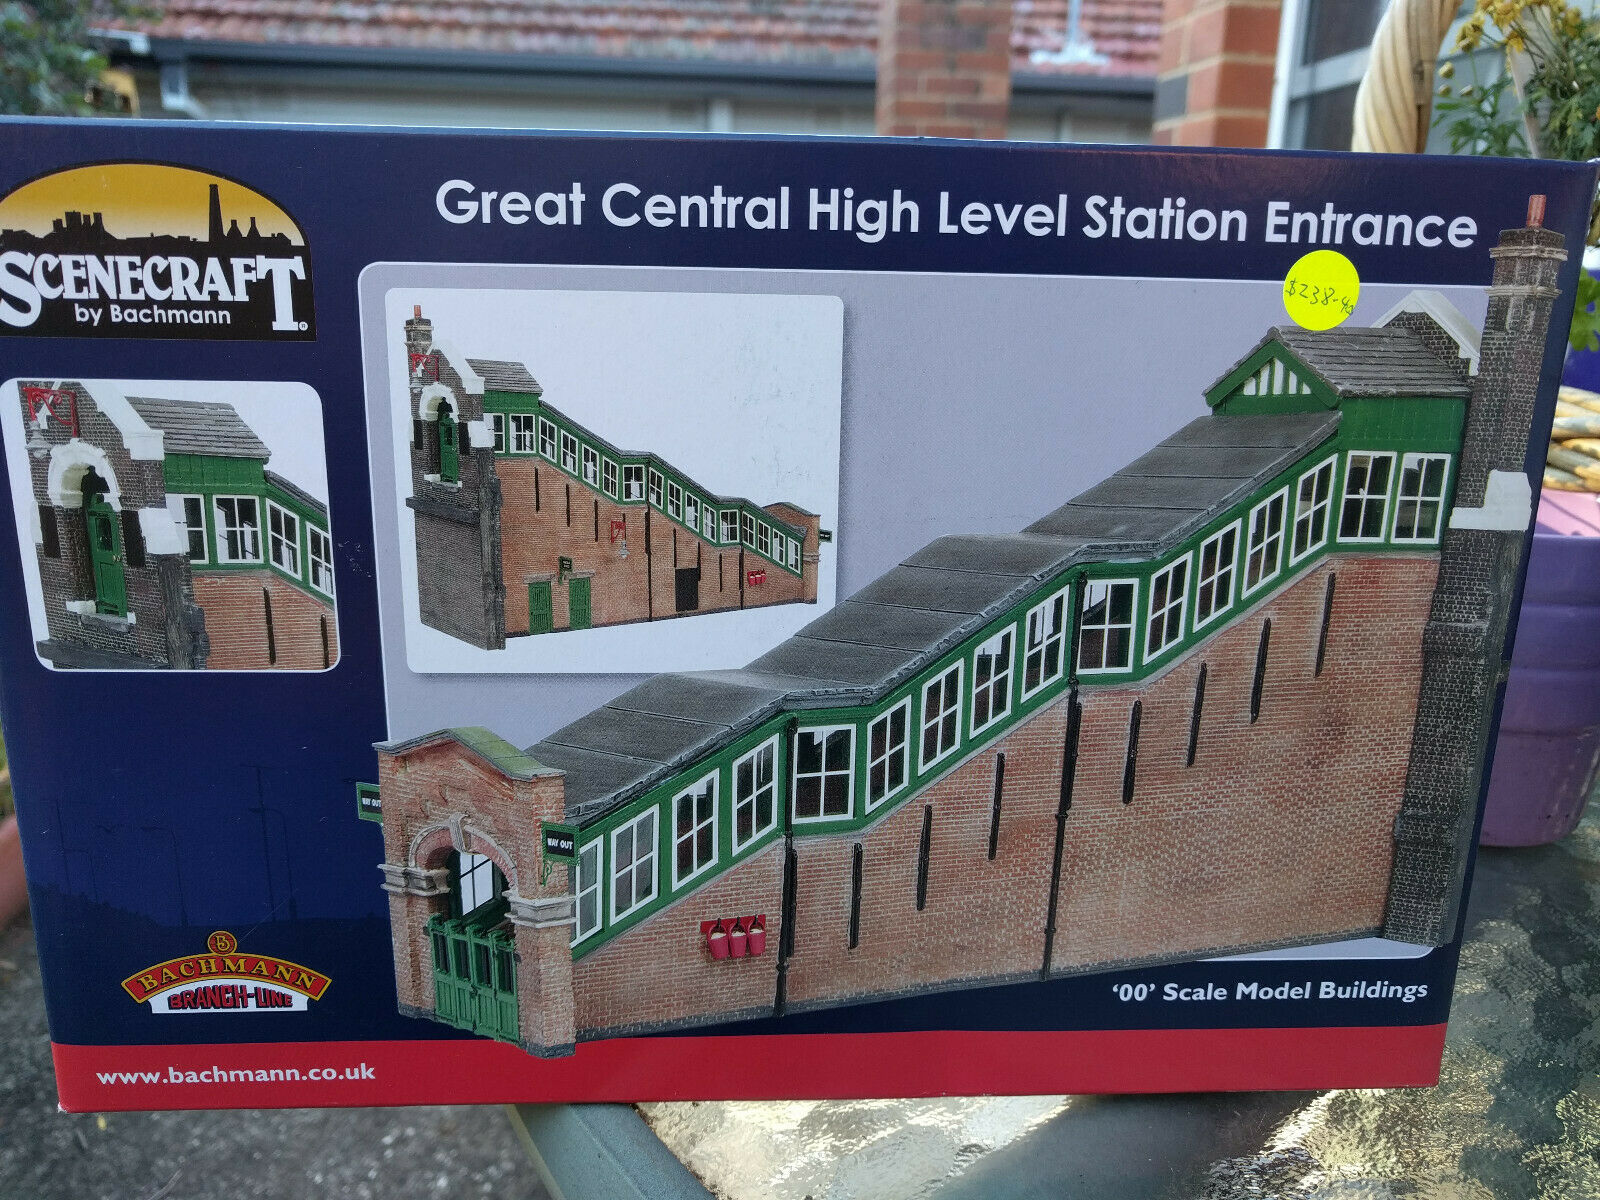 Bachuomon Scenecraft OO Great Central High Level Station Entrance ref 44119B